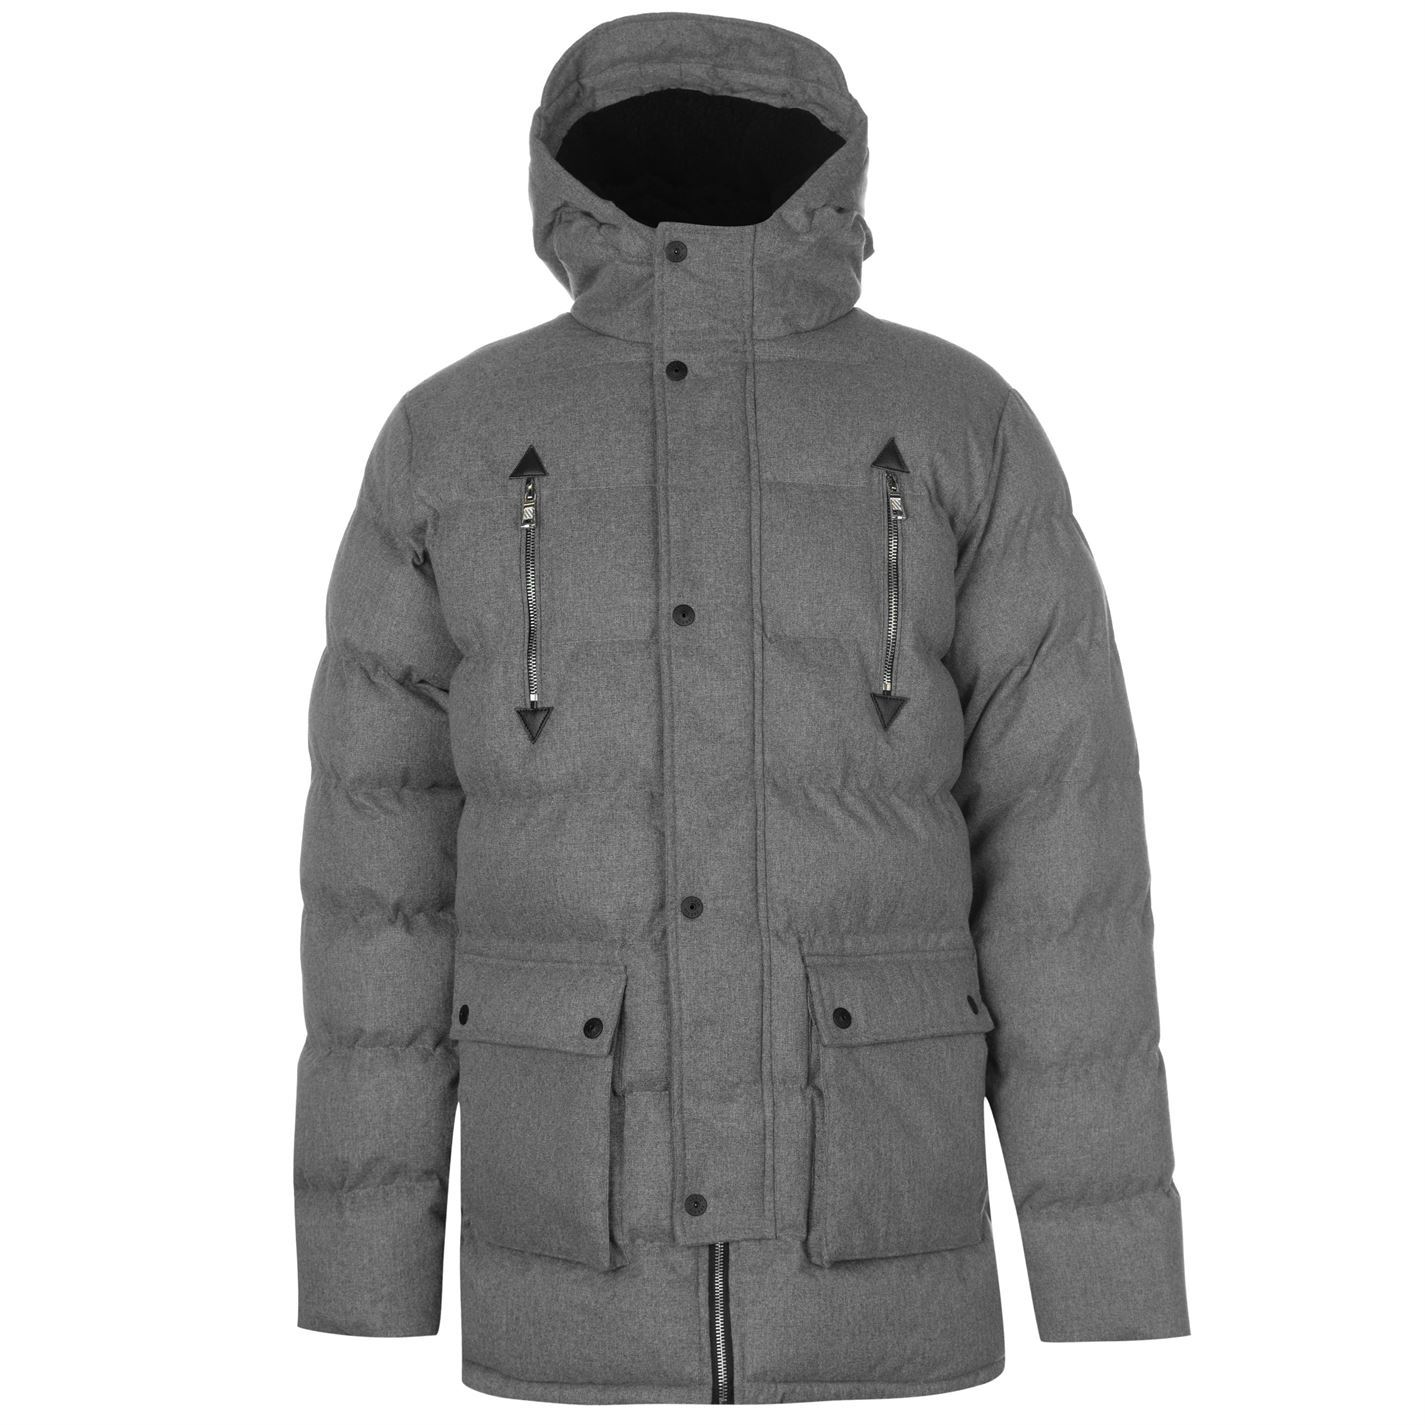 Details about Fabric Mens Texture Jacket Padded Coat Top Hooded Zip Full  Insulated Winter 7c7c8122c664